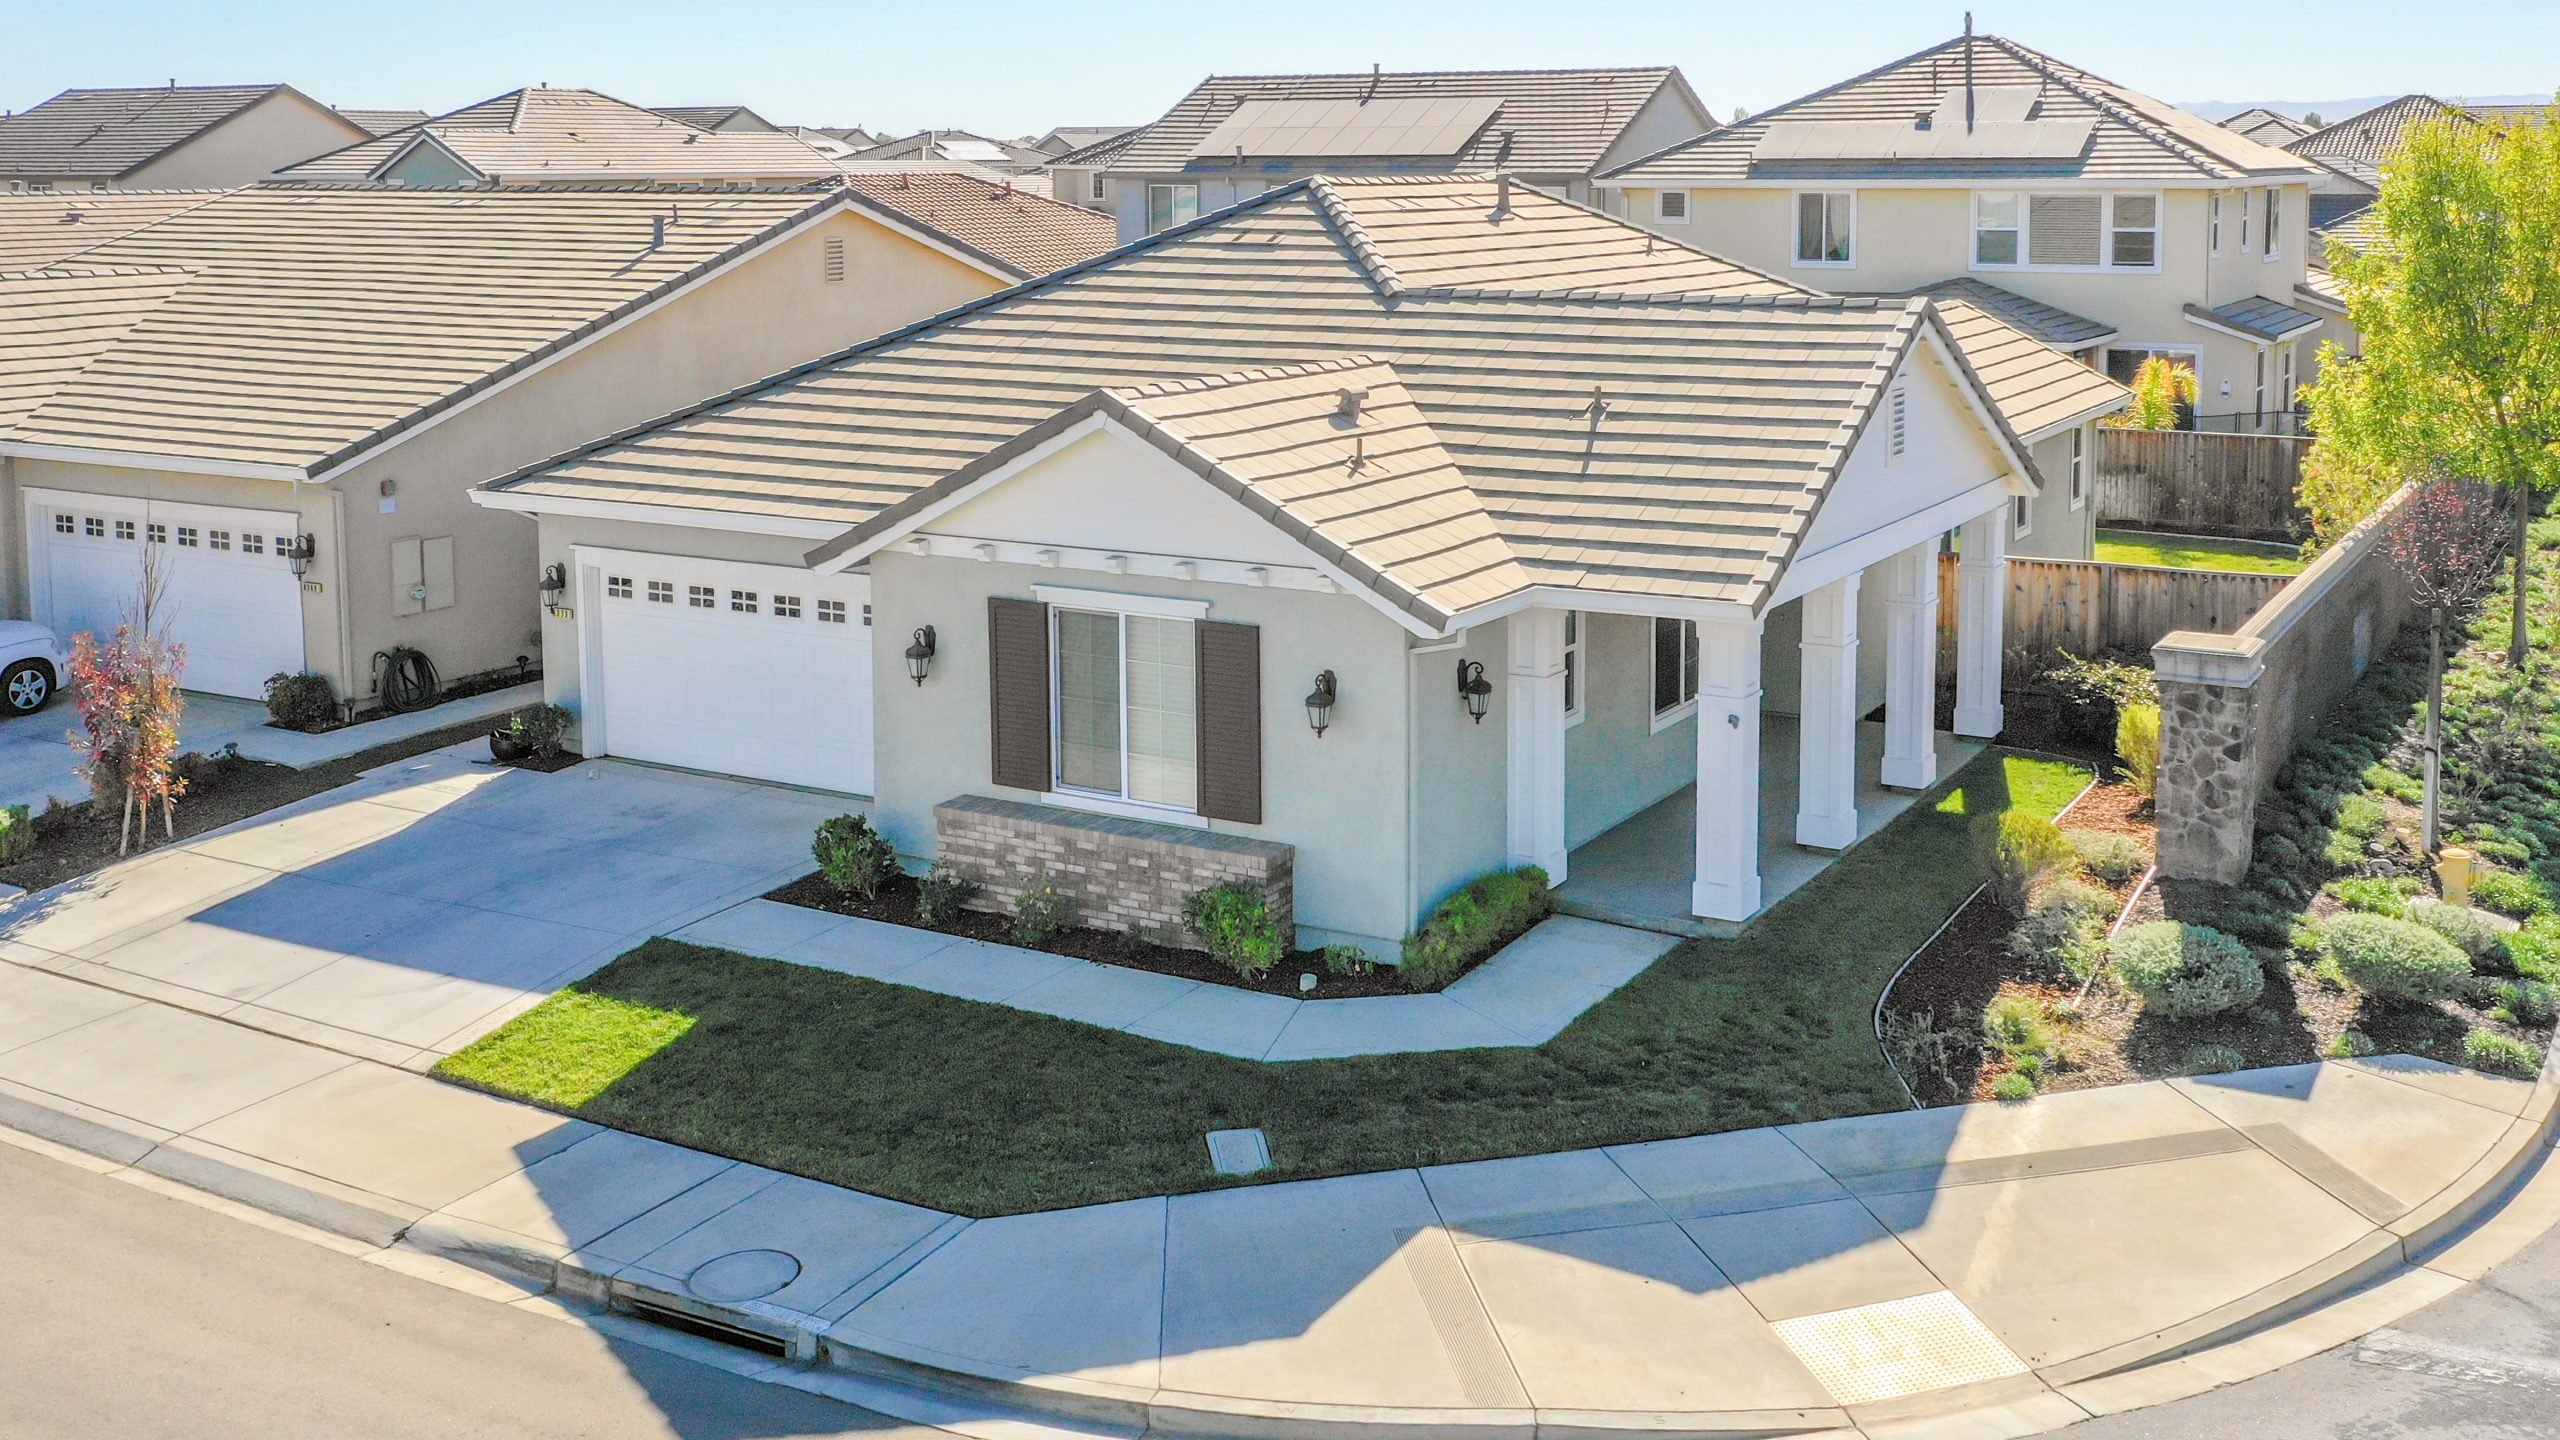 8373-Brookhaven-Circle-Discovery-Bay-1-of-42-1541610421